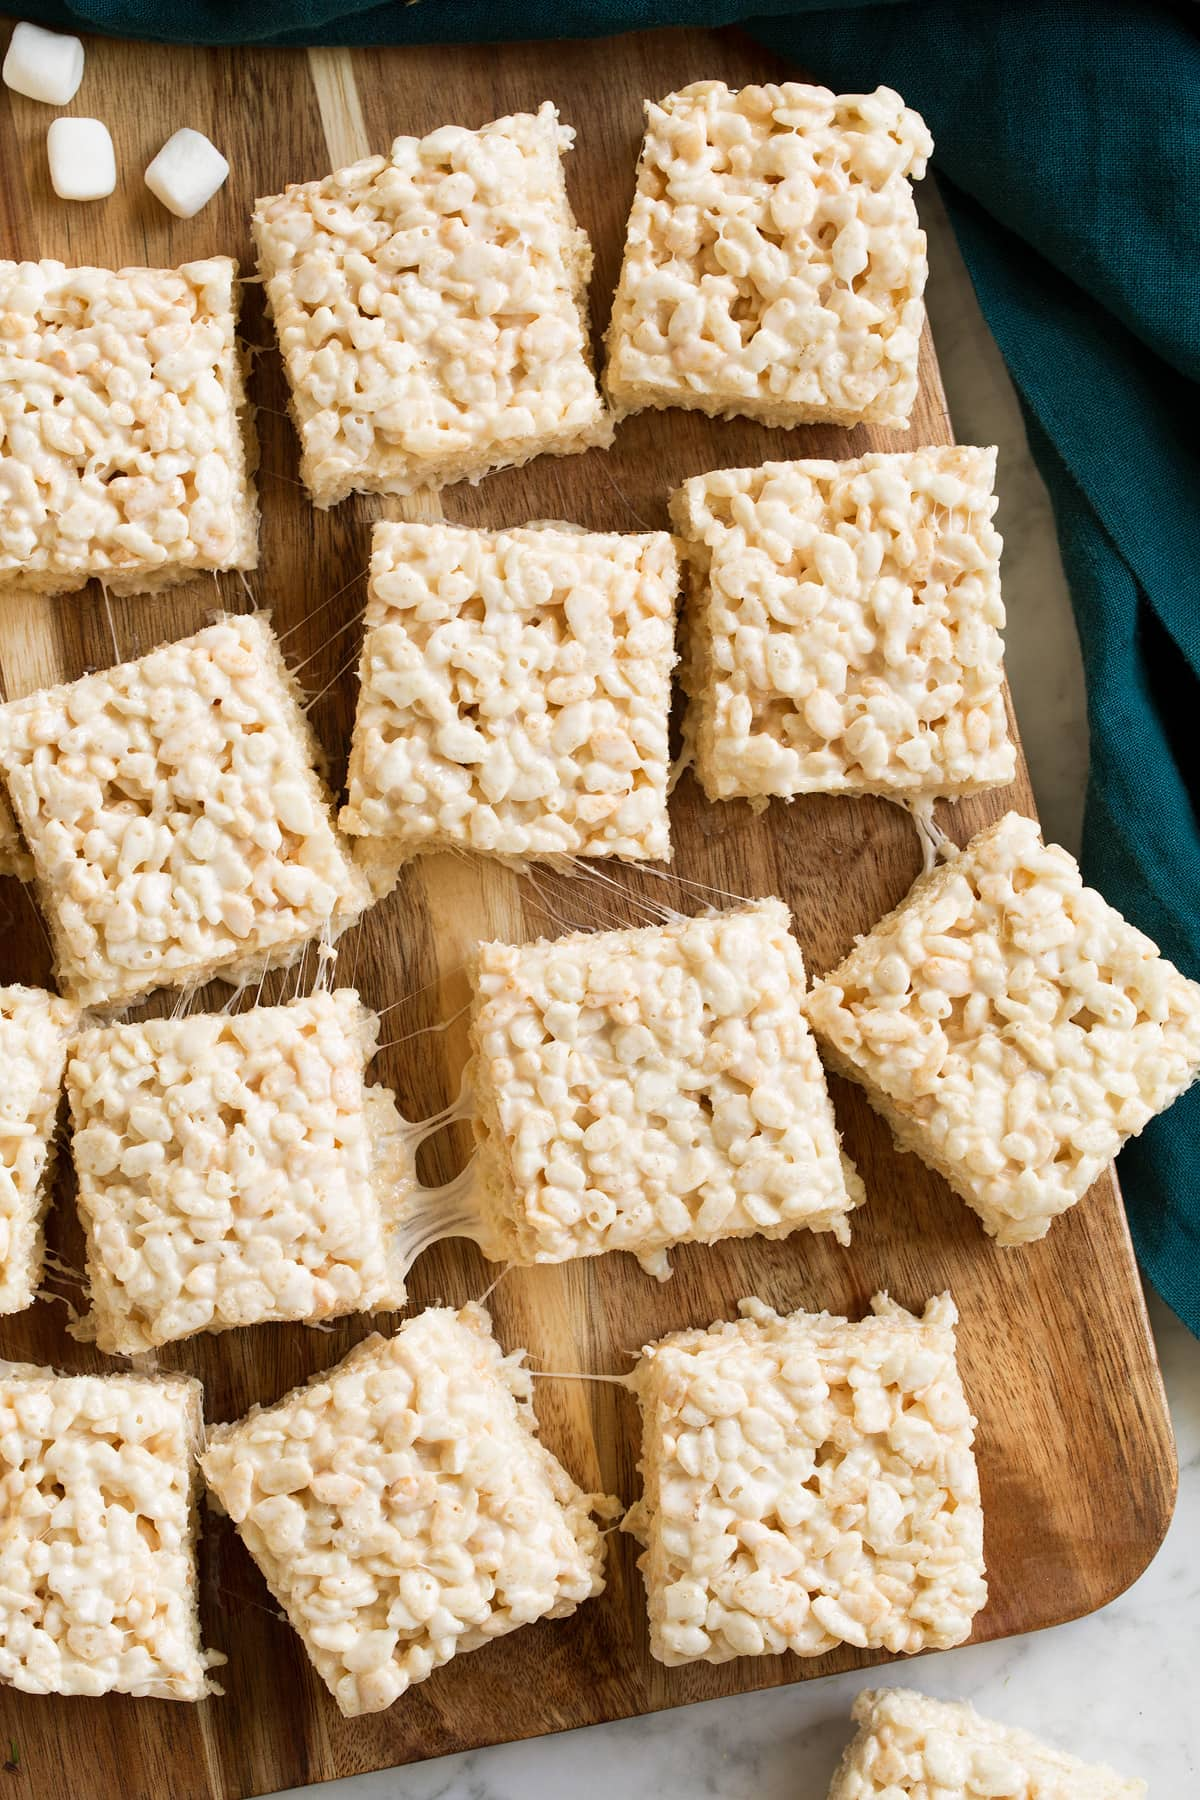 Overhead image of rice krispie treat squares on a wooden cutting board.